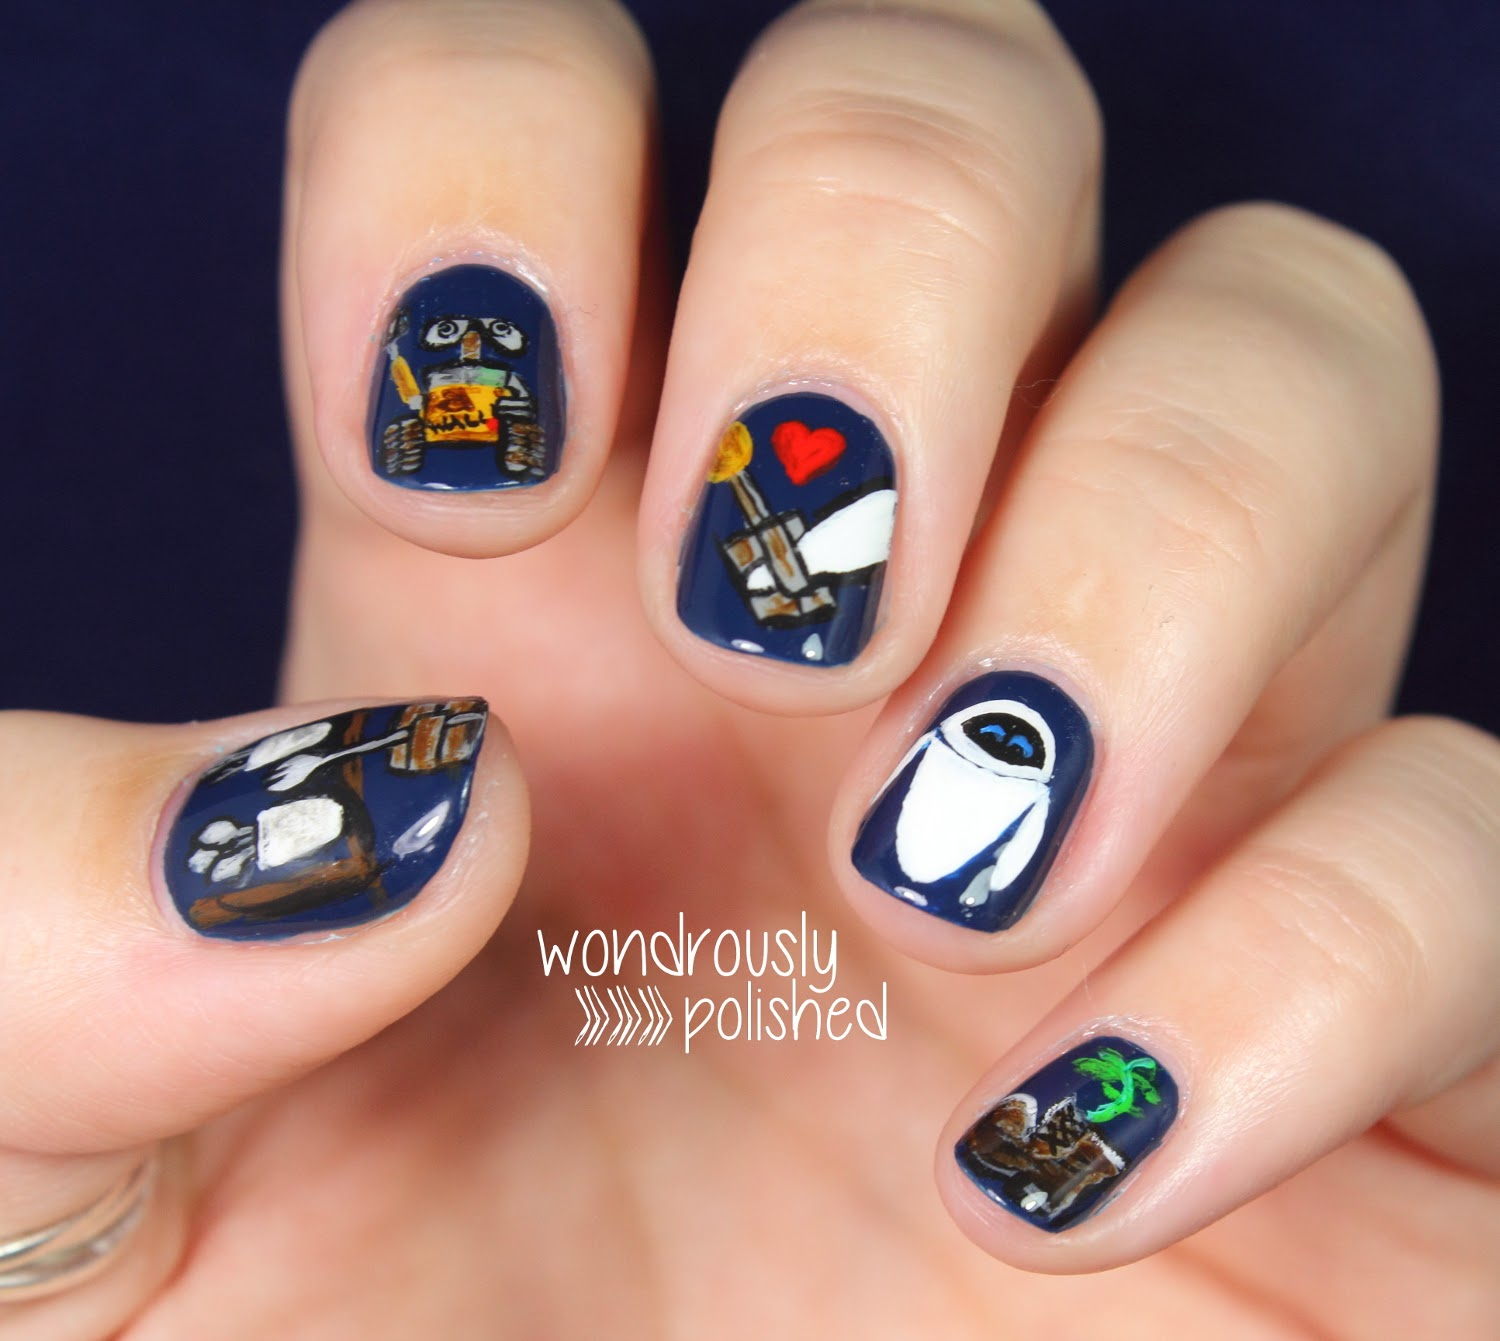 Wondrously Polished 31 Day Nail Art Challenge Day 23 Inspired By